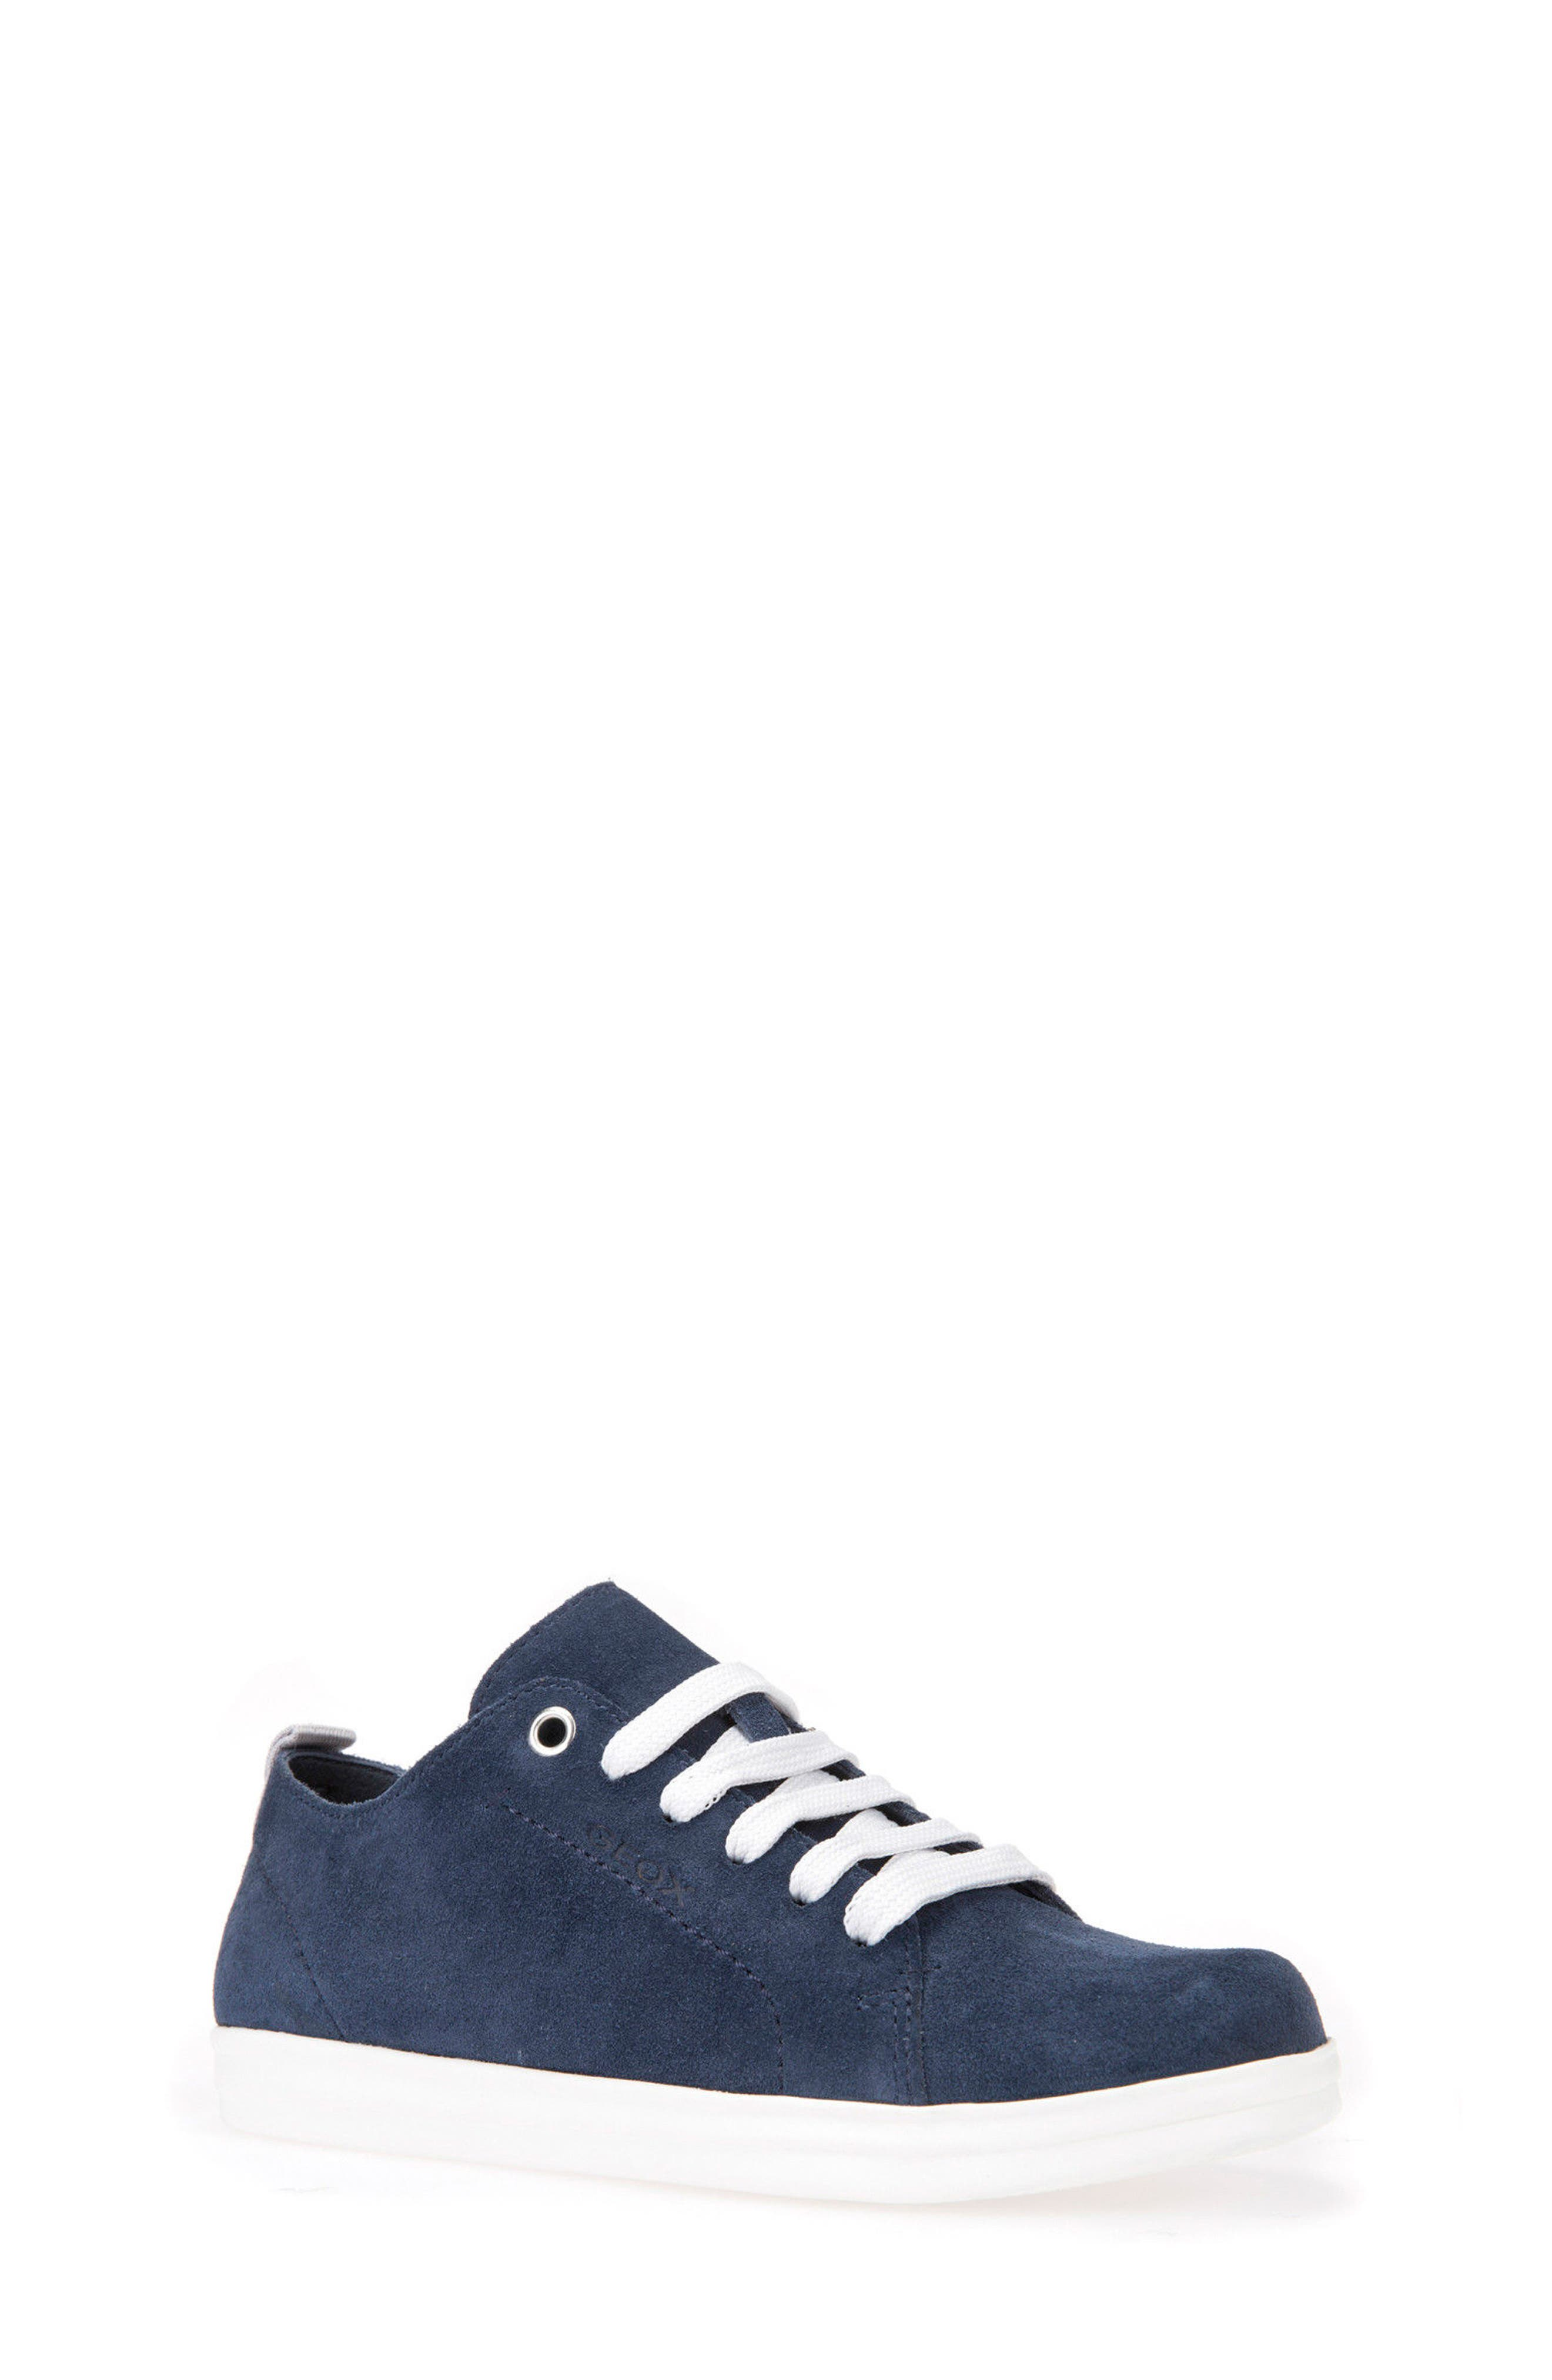 Anthor Low Top Sneaker,                             Main thumbnail 1, color,                             Navy